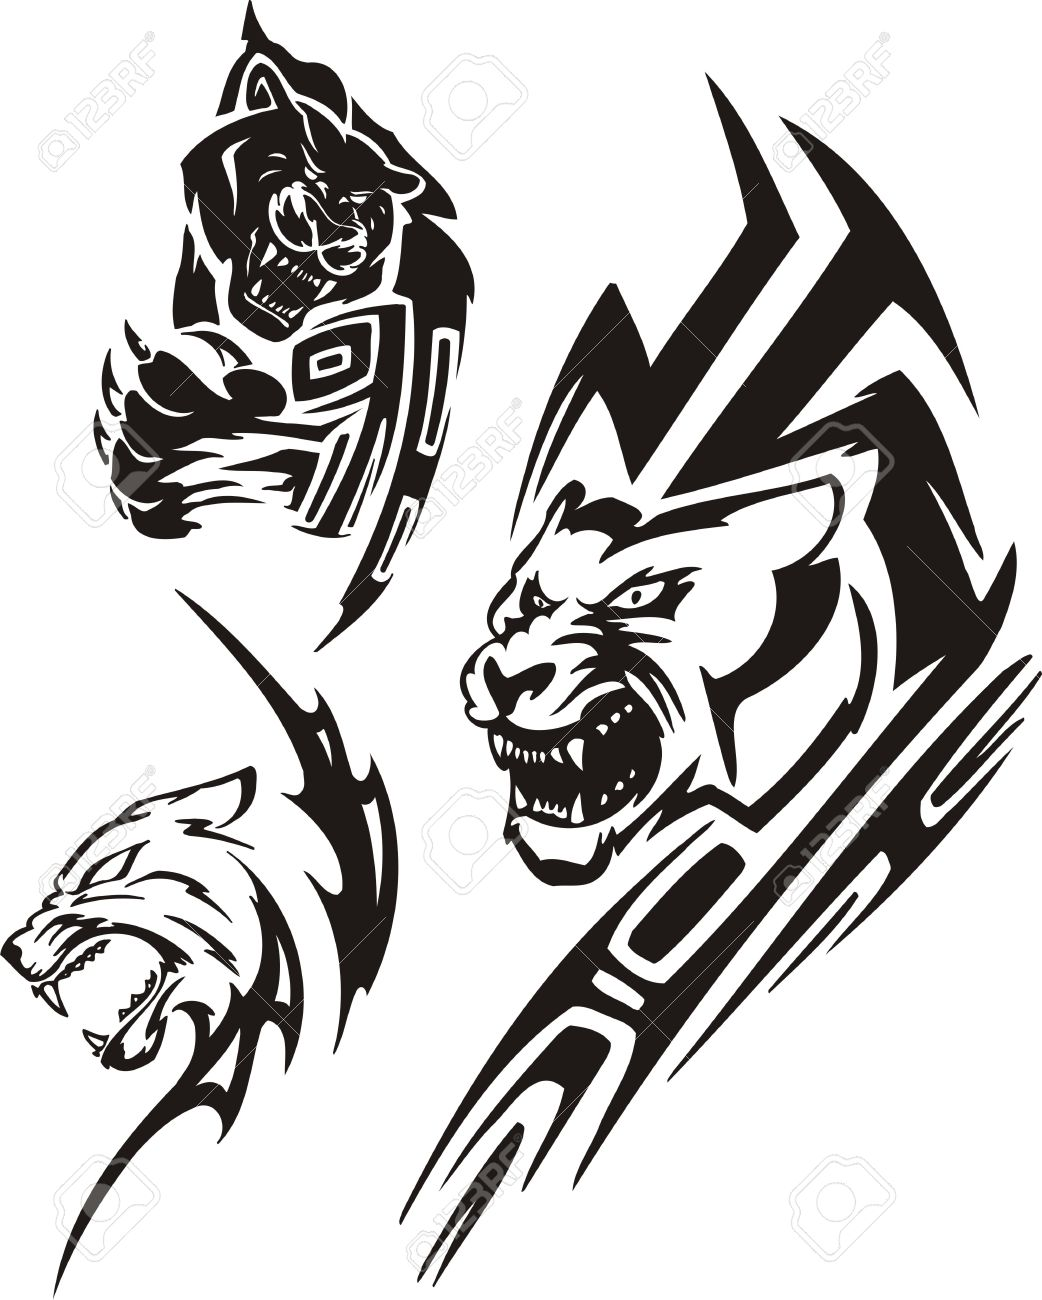 hight resolution of panther with sharp unguises and a lioness tribal predators vector illustration ready for vinyl